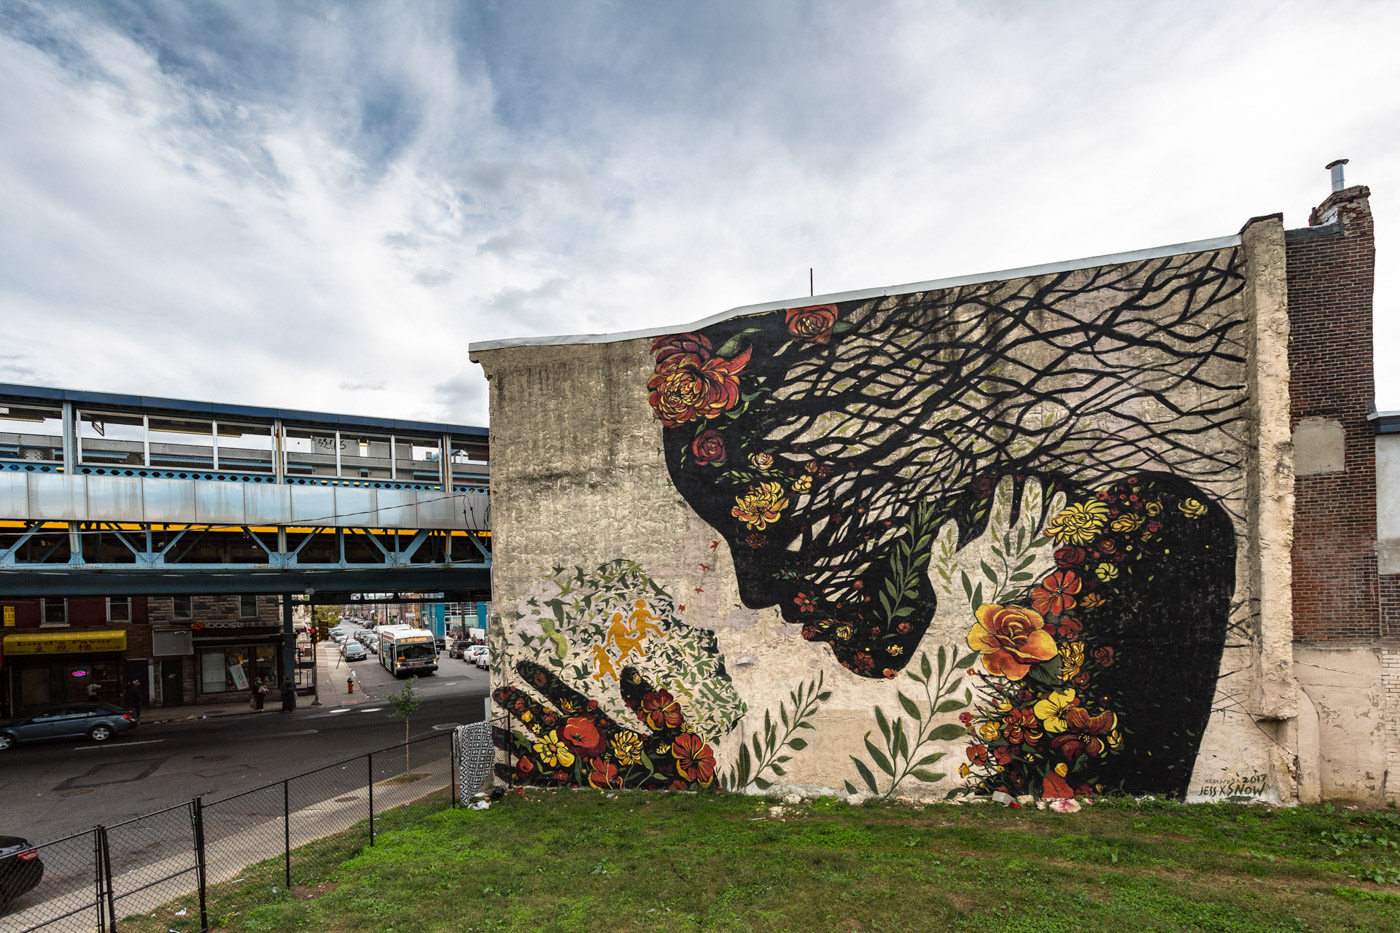 A Daughter Migrates Towards the Mother Earth  by Jess X Snow for the   We the People   series with  Mural Arts Philadelphia . Philadelphia, PA. 2017. Photo by Steve Weinik. (curator)